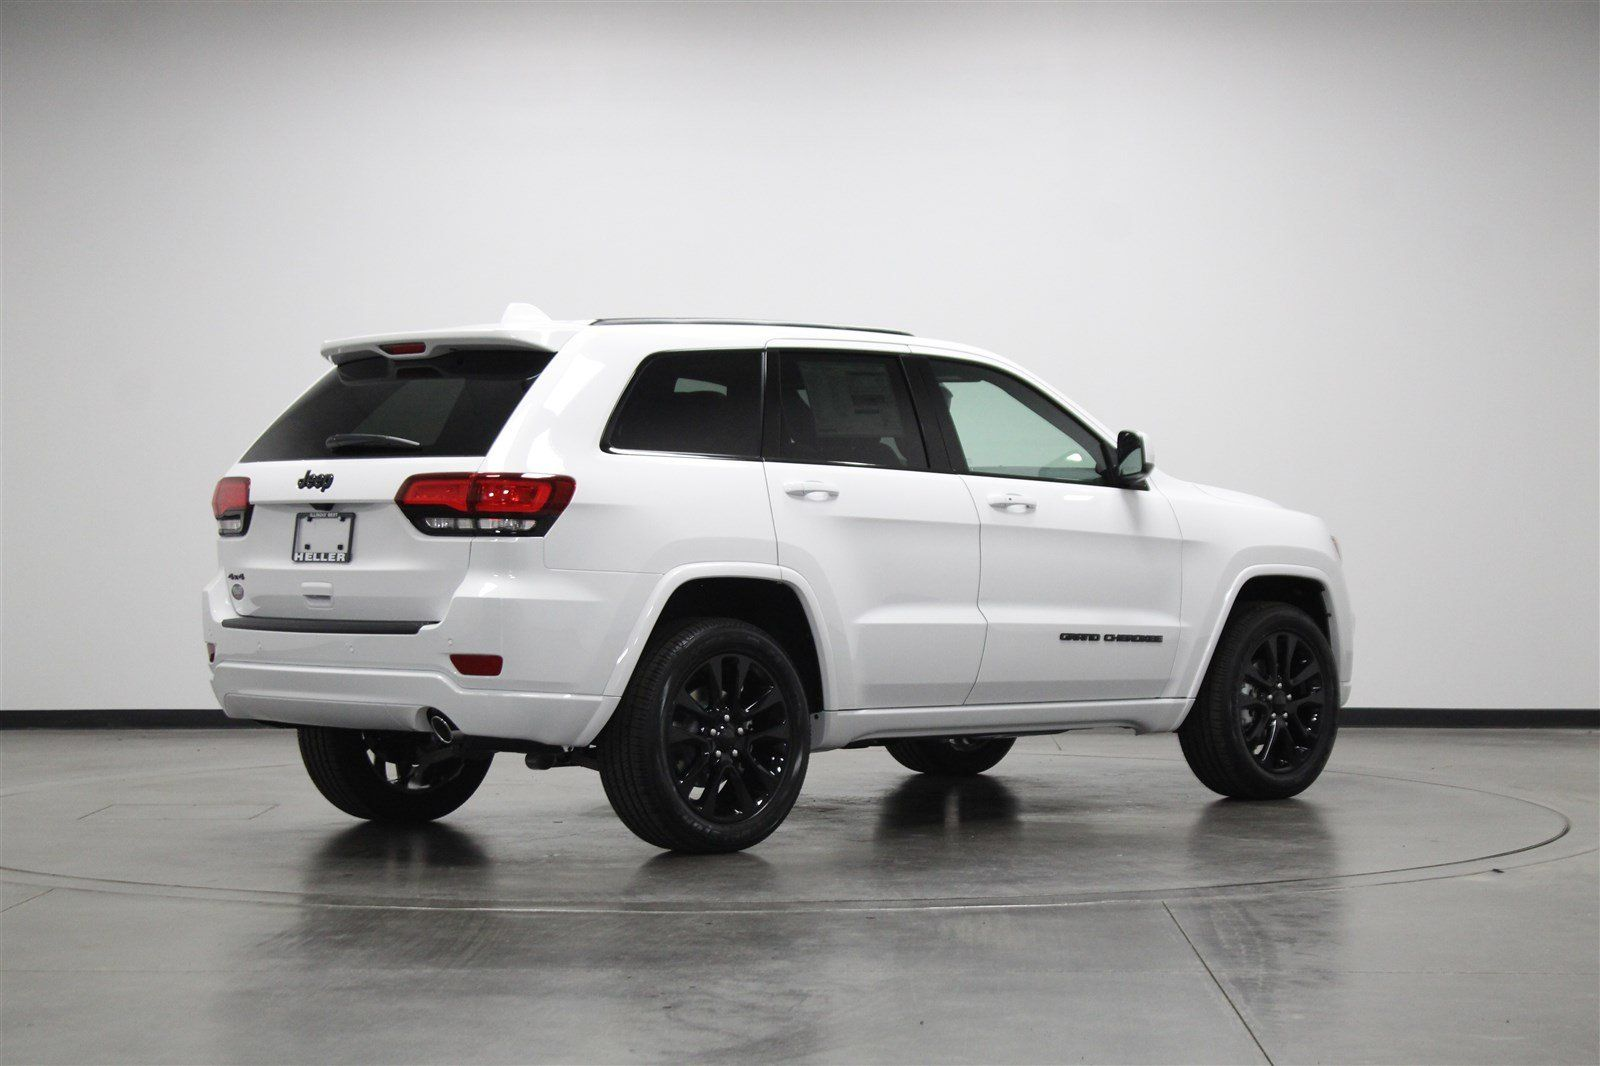 2019 Jeep Grand Cherokee Altitude 4x4 White White Jeep White Jeep Grand Cherokee White Jeep Cherokee